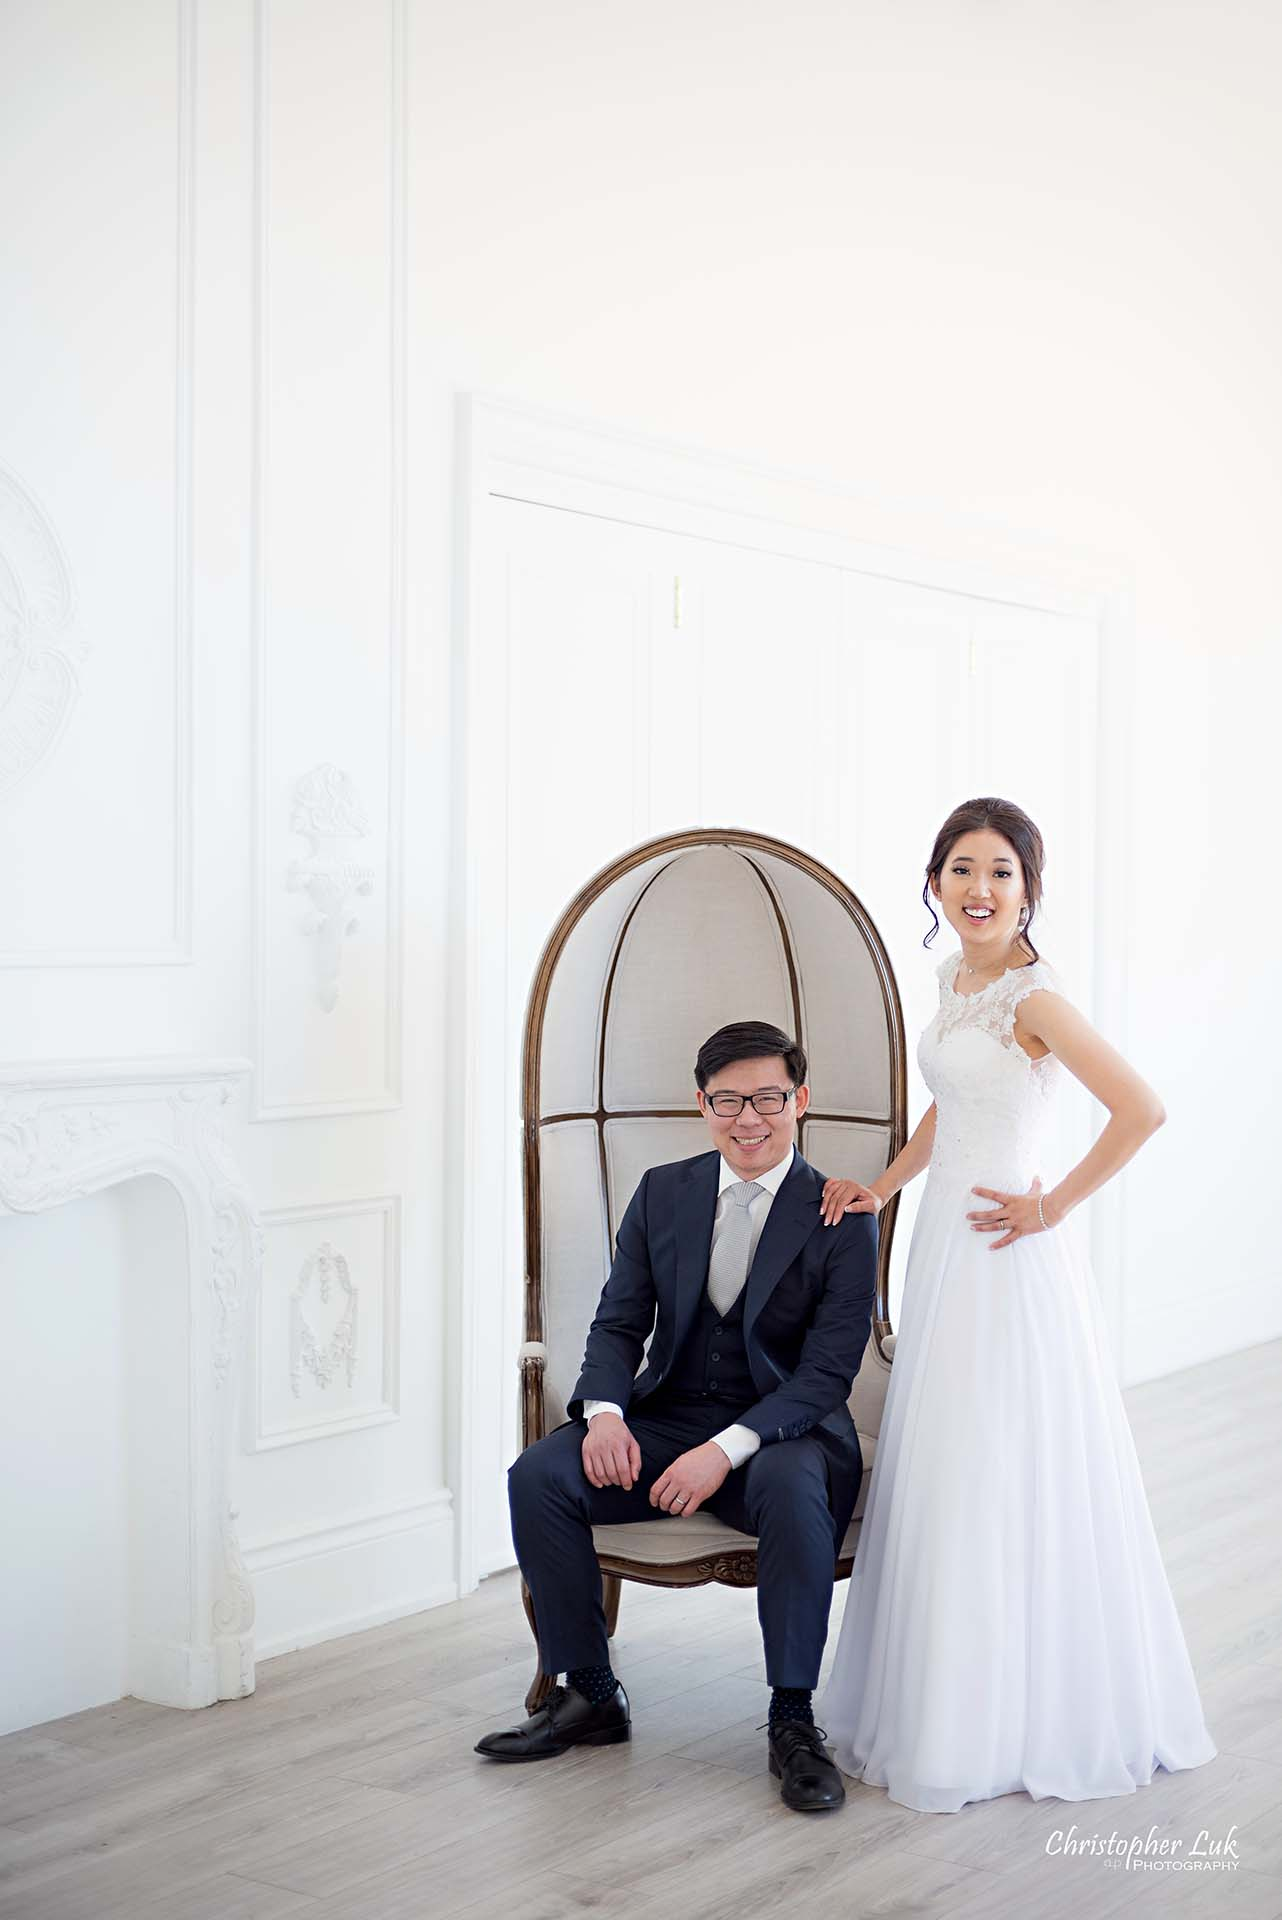 Christopher Luk Toronto Wedding Photographer - Mint Room Studios Bride Groom Natural Candid Photojournalistic Conservatory Ballroom Dome Chair Styled Portrait